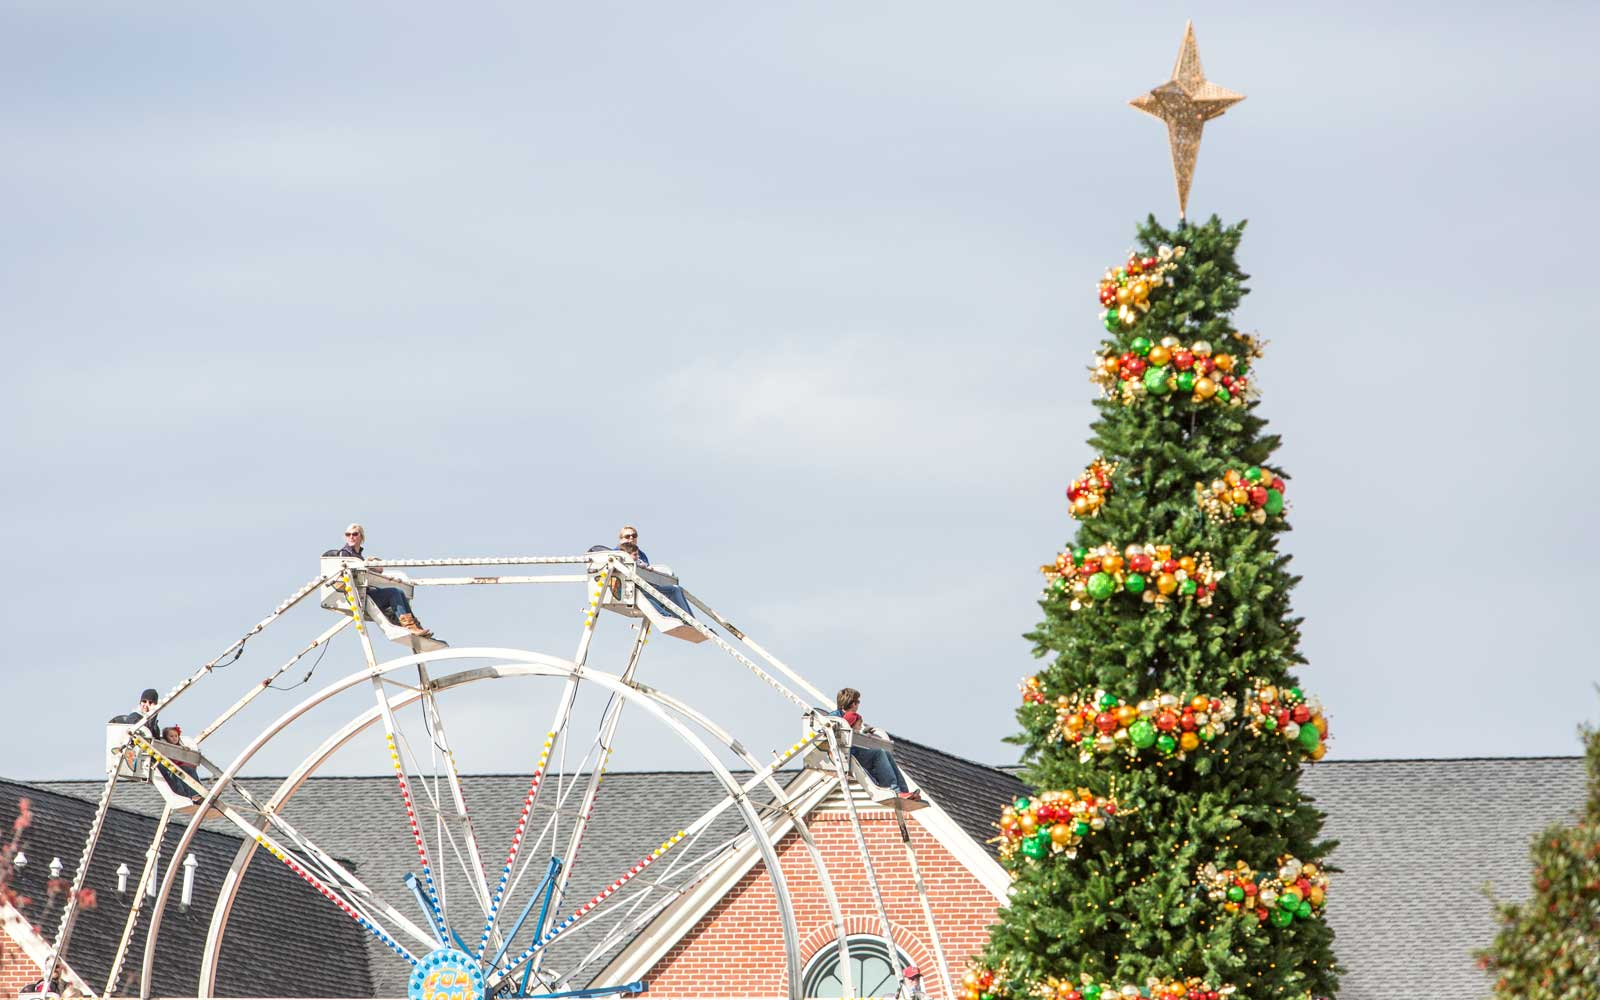 December 03, 2016 Rock Hill, SC Children and adults enjoy the ferris wheel Christmasville in Old Town